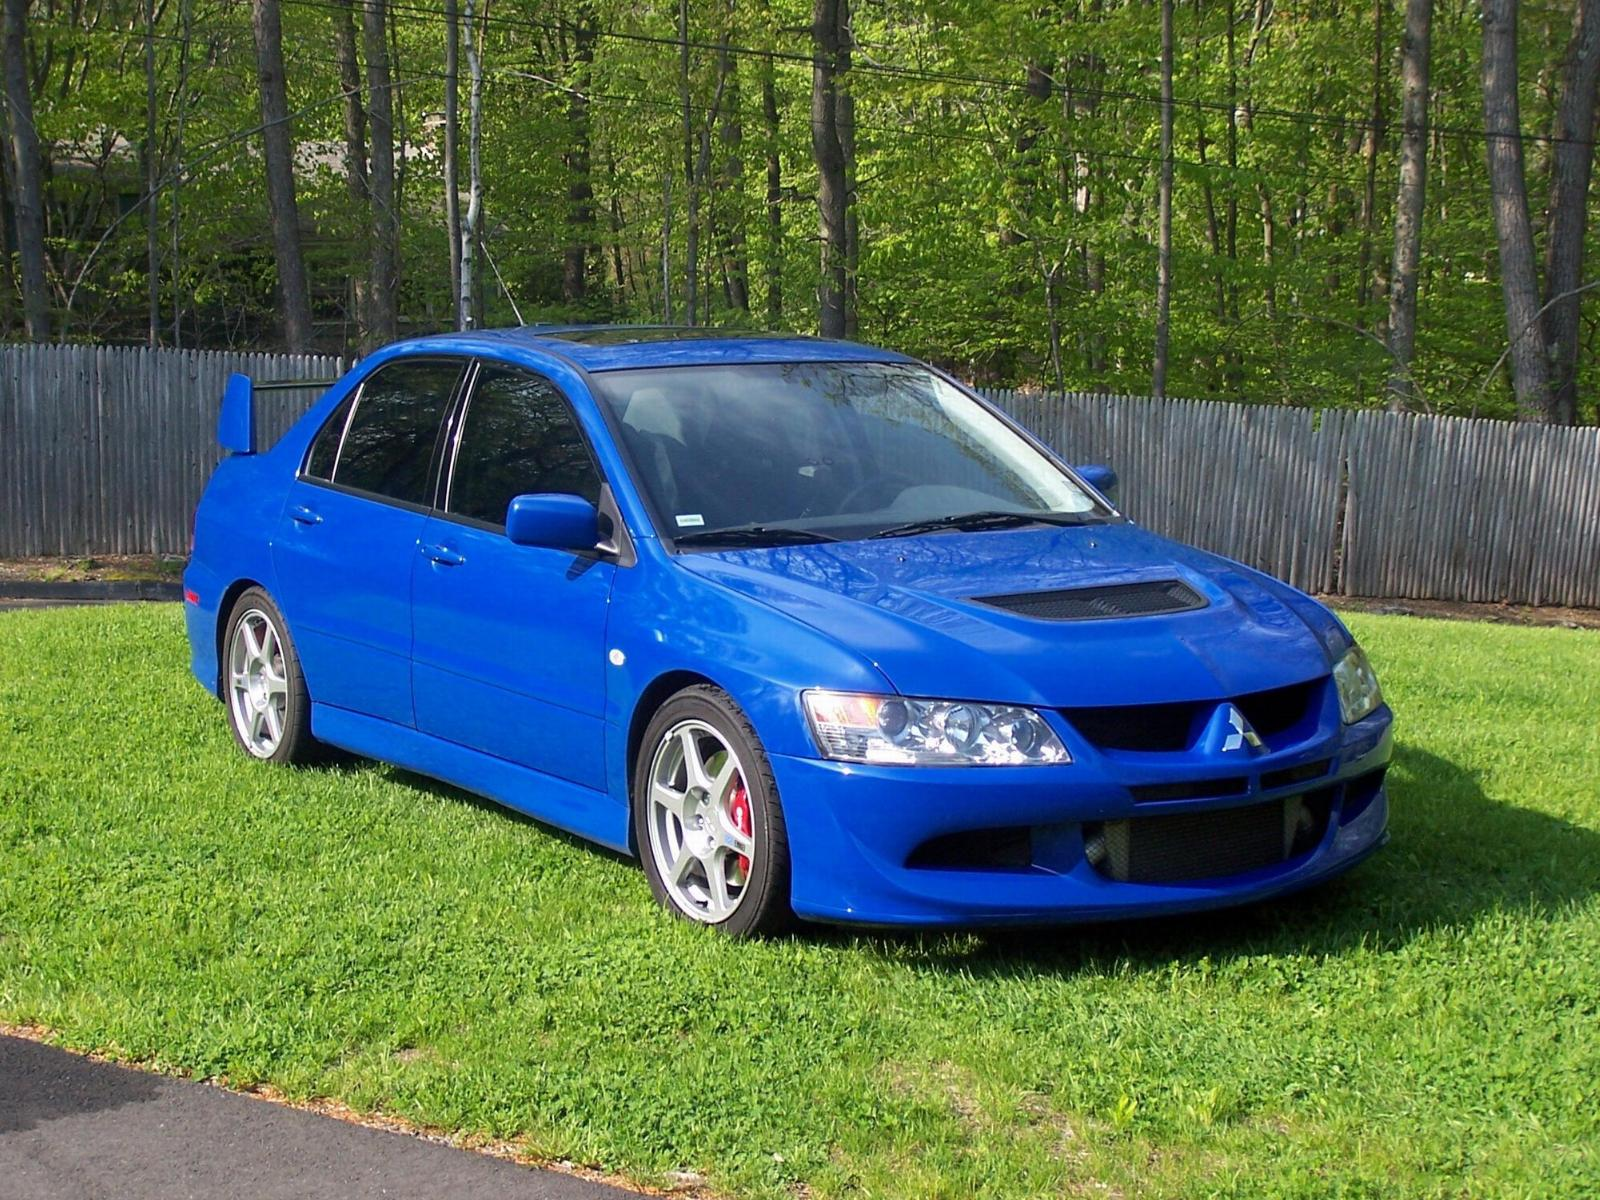 Limelight Mitsubishi Lancer Evolution Ix Gt additionally 2004 Mini Cooper Pictures C2843 pi35973647 besides Five Cars That Made Dc Design Famous furthermore 39593131 in addition Mitscaps. on 2003 mitsubishi lancer cars